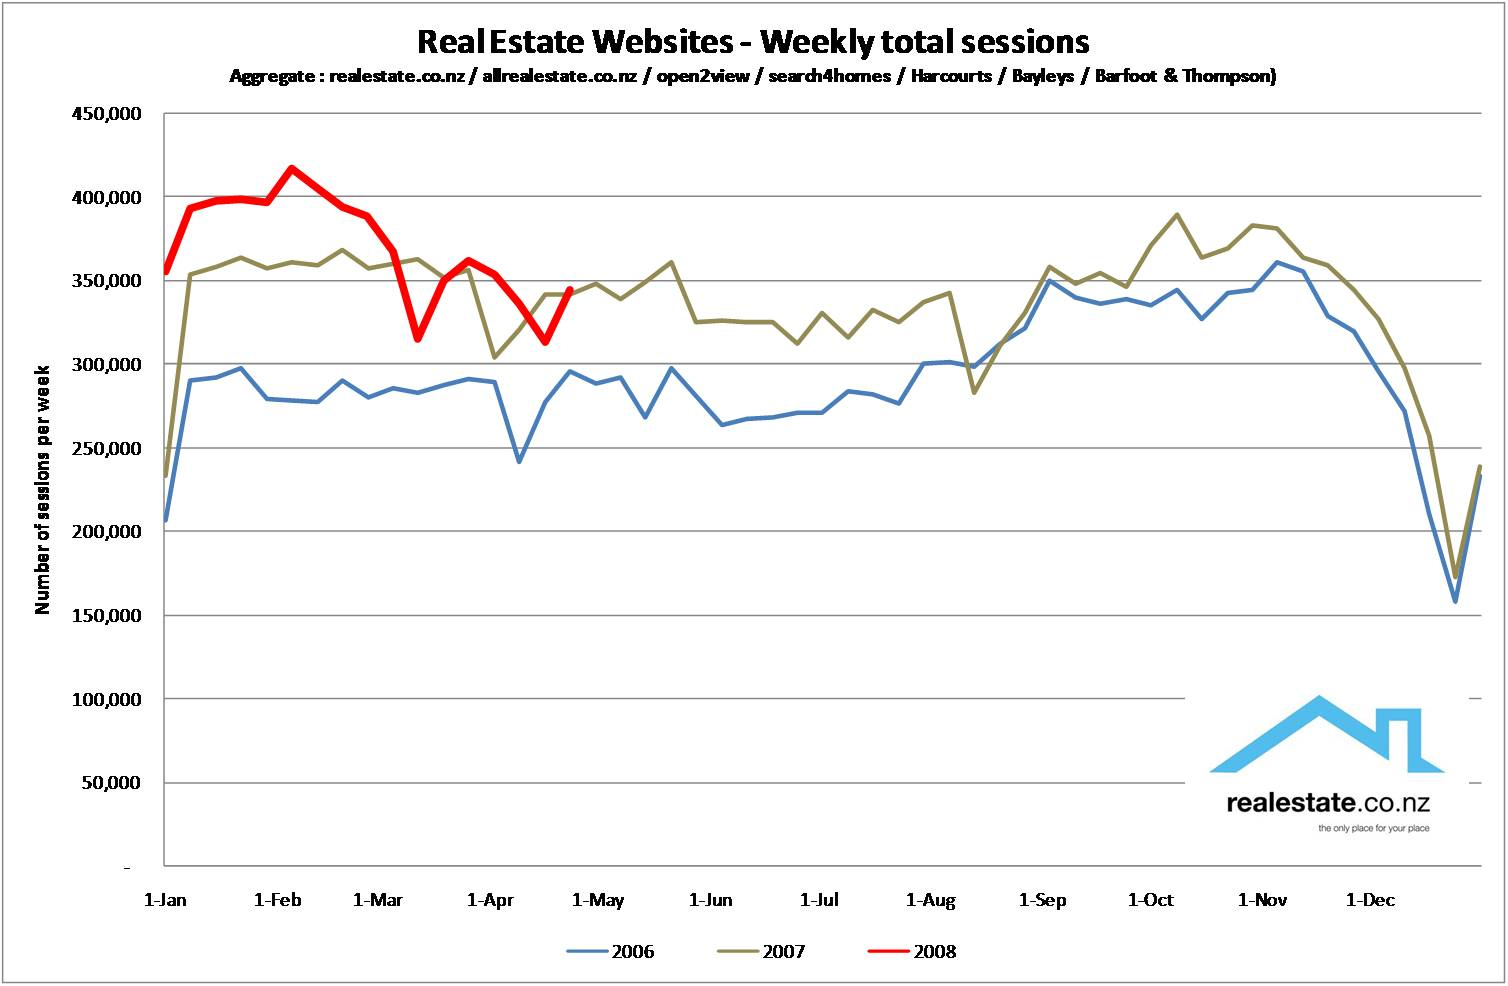 NZ real estate web traffic 2006 - 2008